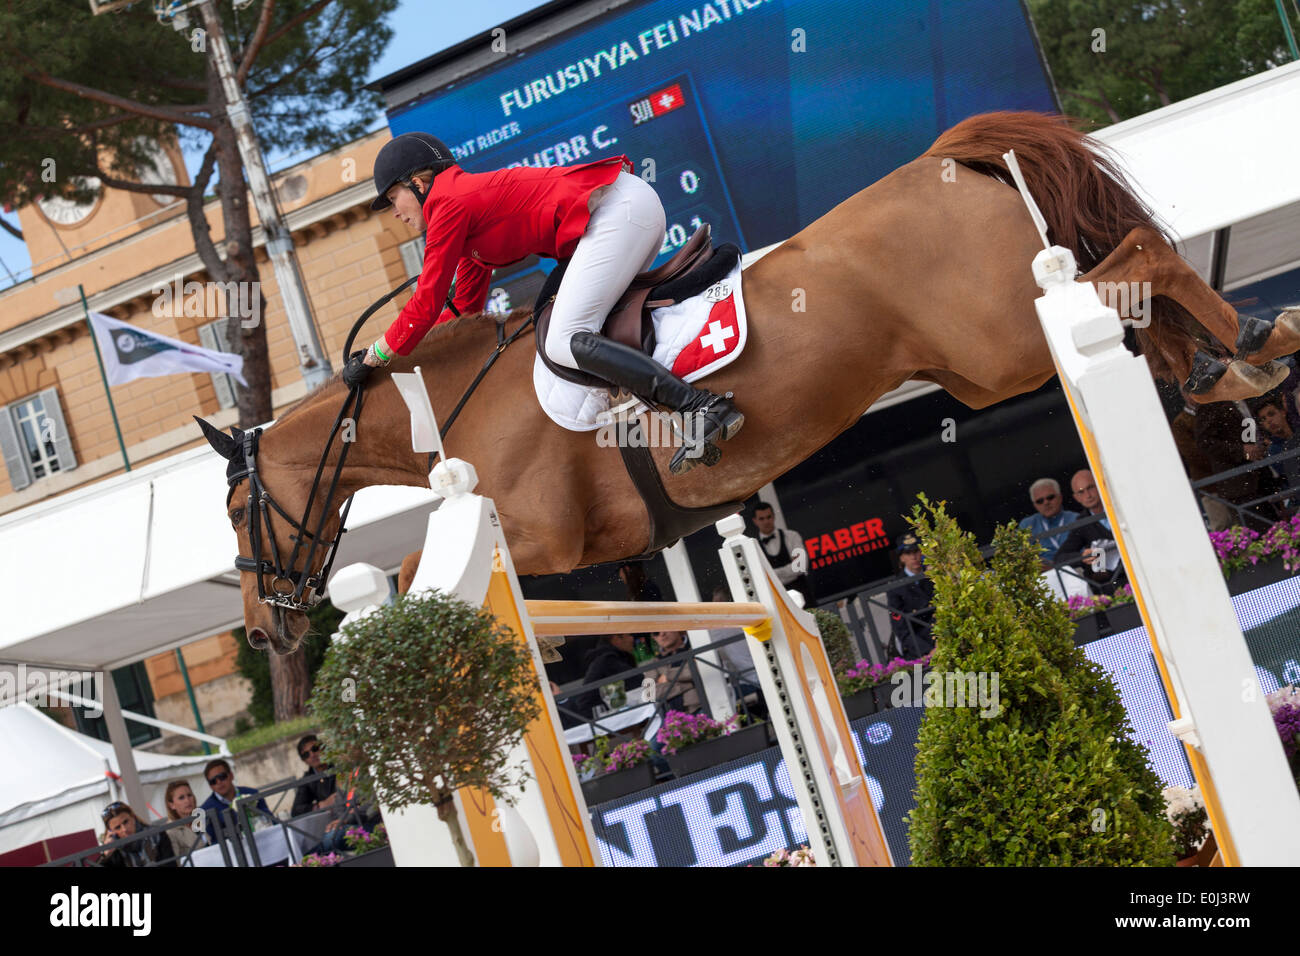 Christina Liebherr on LB Callas Sitte jumping in the Furusiyya Nations Cup in Piazza di Siena show jumping event in Rome 2013. - Stock Image